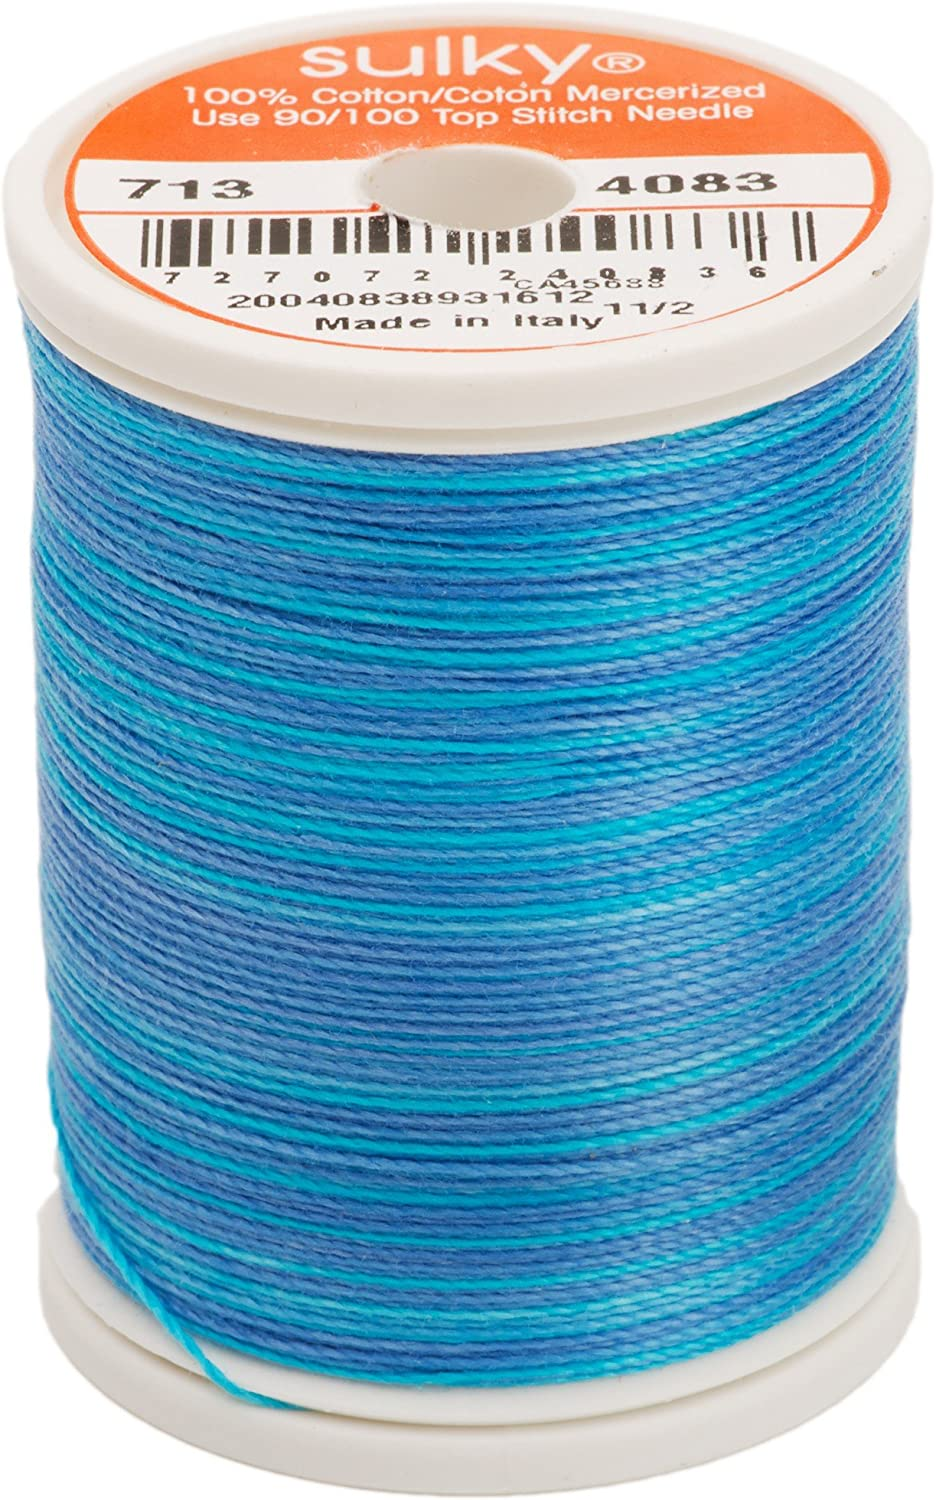 Sapphire 330-Yard Sulky 713-4083 12-Weight Cotton Blendable Thread